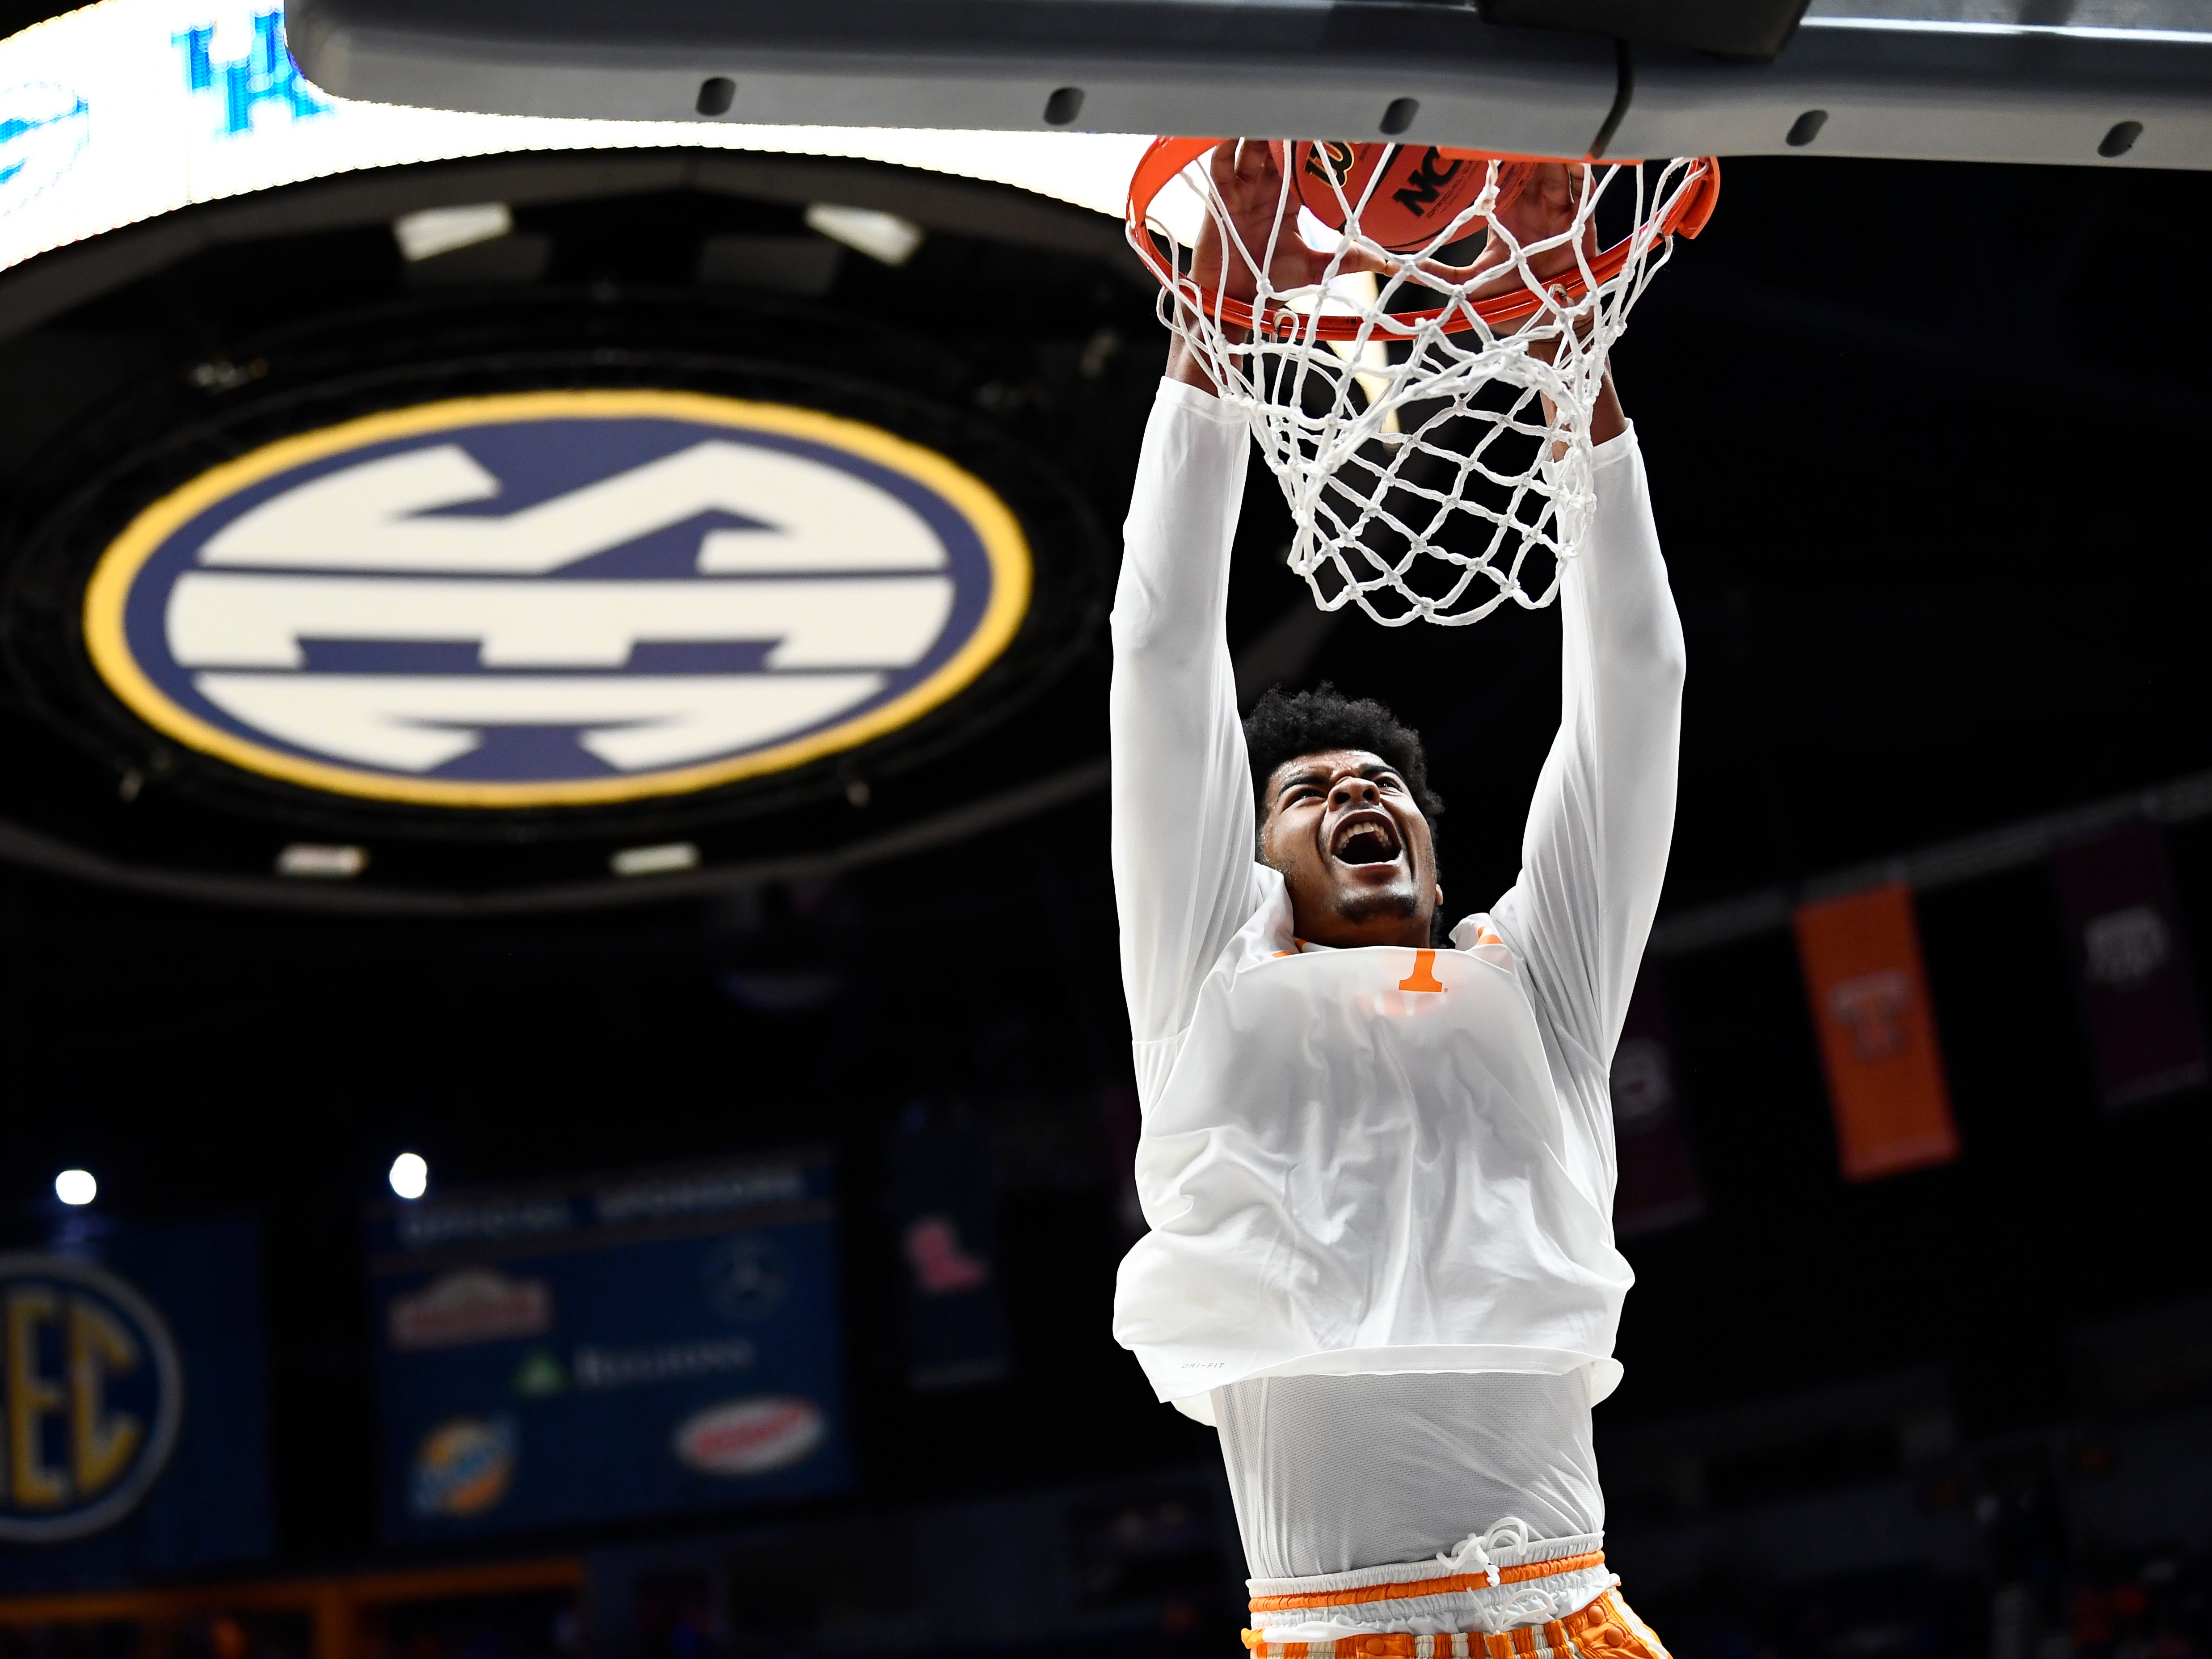 Tennessee guard Jordan Bowden (23) warms up before the SEC Men's Basketball Tournament game against Mississippi State at Bridgestone Arena in Nashville, Tenn., Friday, March 15, 2019.